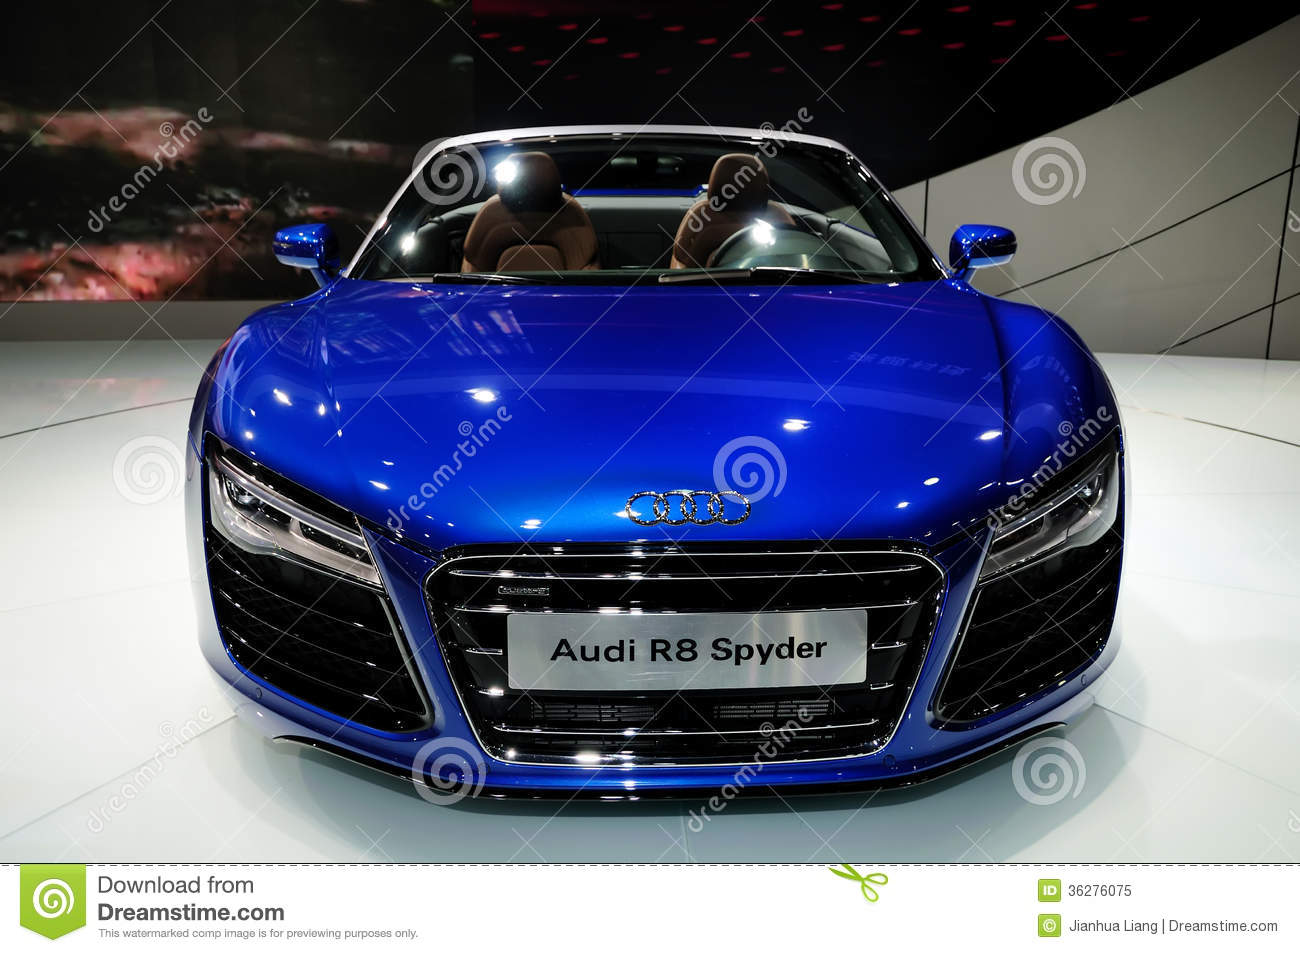 Wonderful Audi R8 Spyder Convertible Sports Car